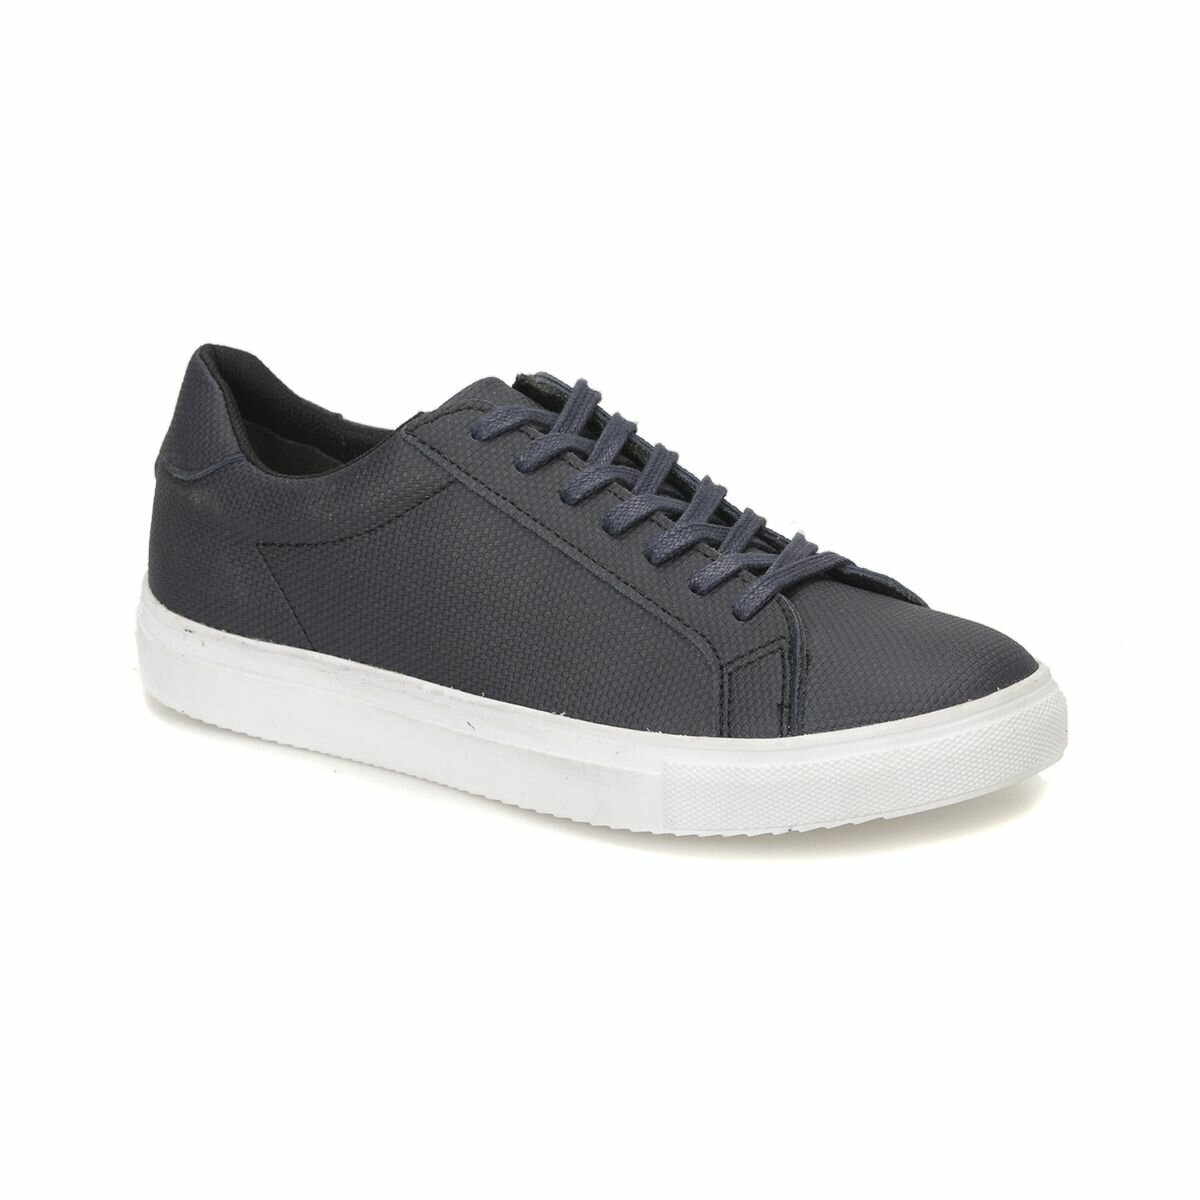 FLO PEDRO-1 Navy Blue Men 'S Shoes Panama Club